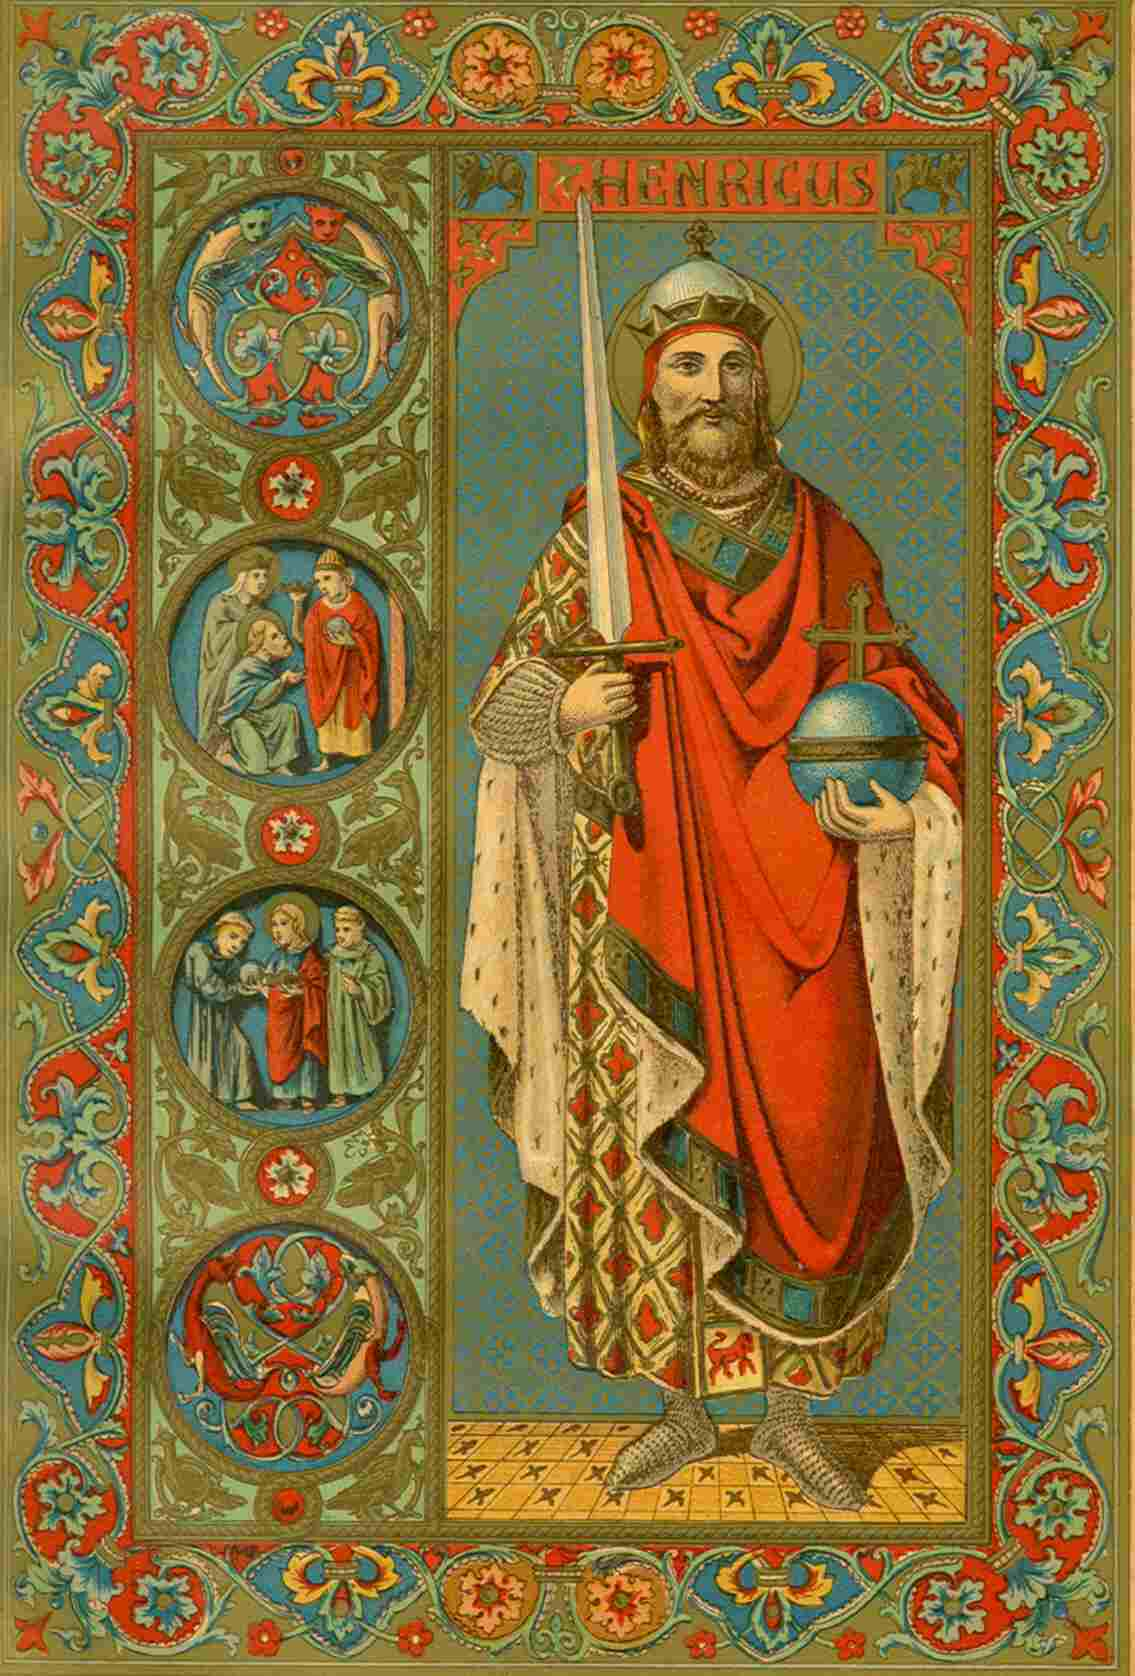 The Life of a Medieval Catholic King-Saint that Reads Like a Tolkien Story